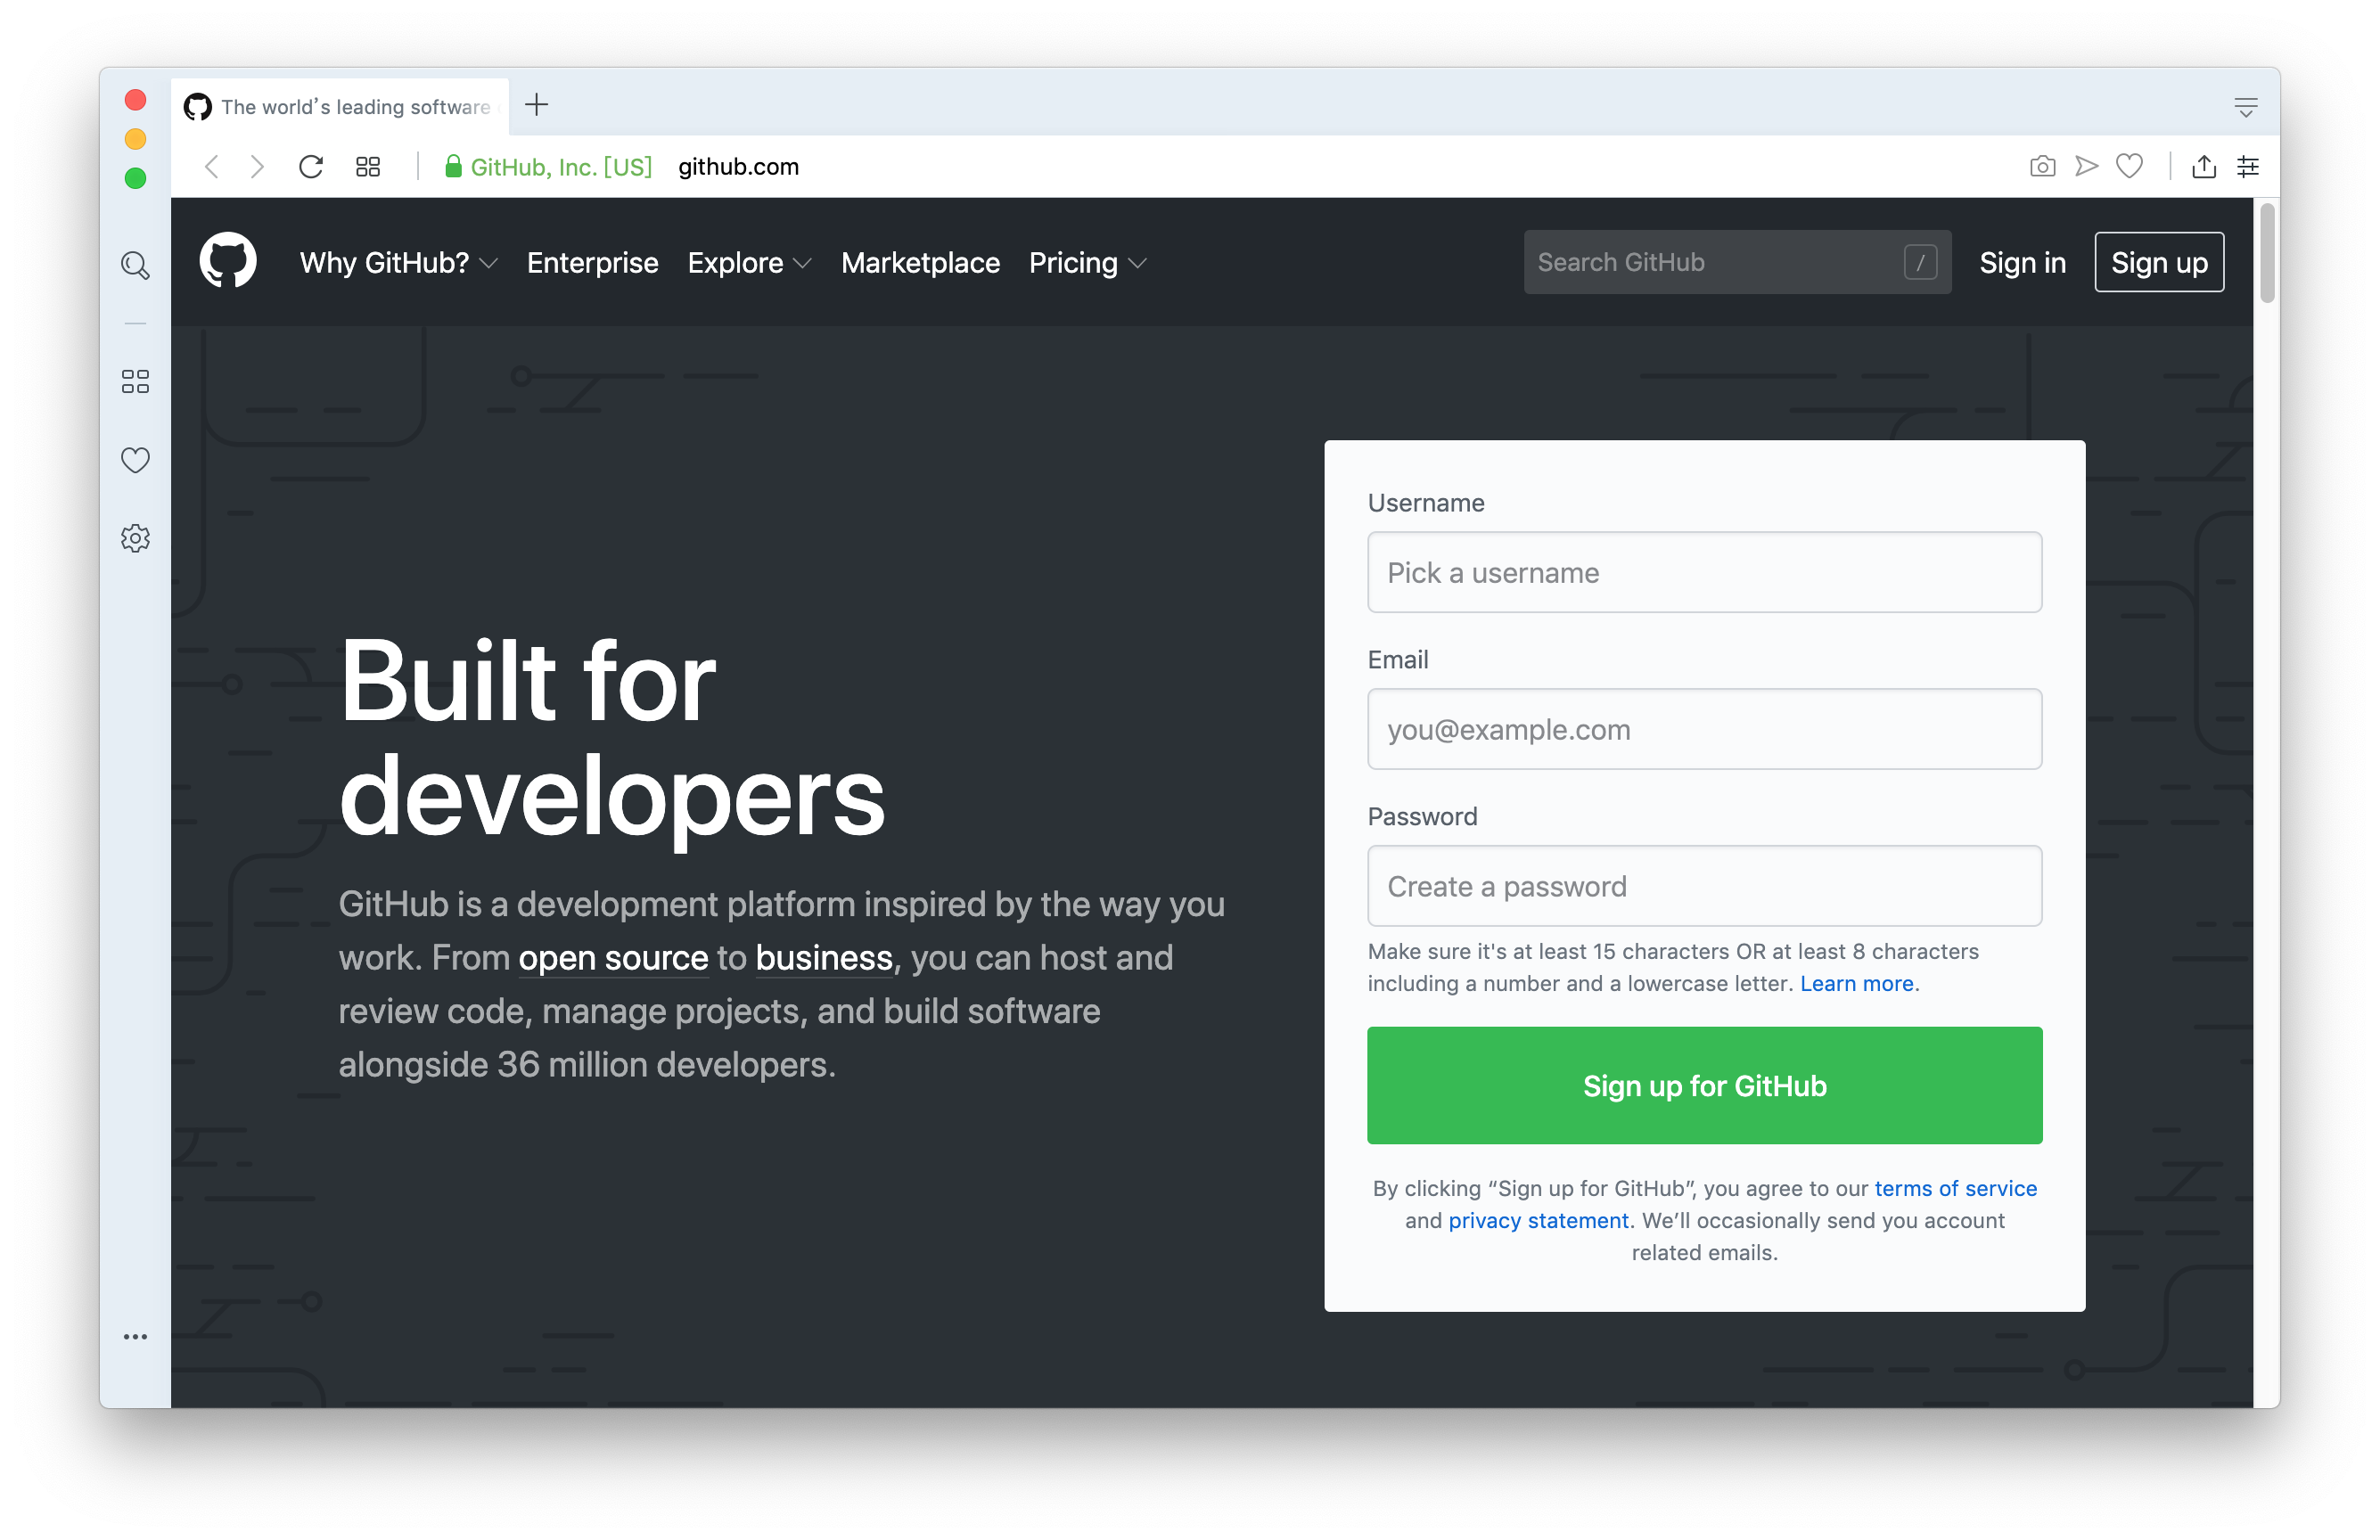 Sign up for Github